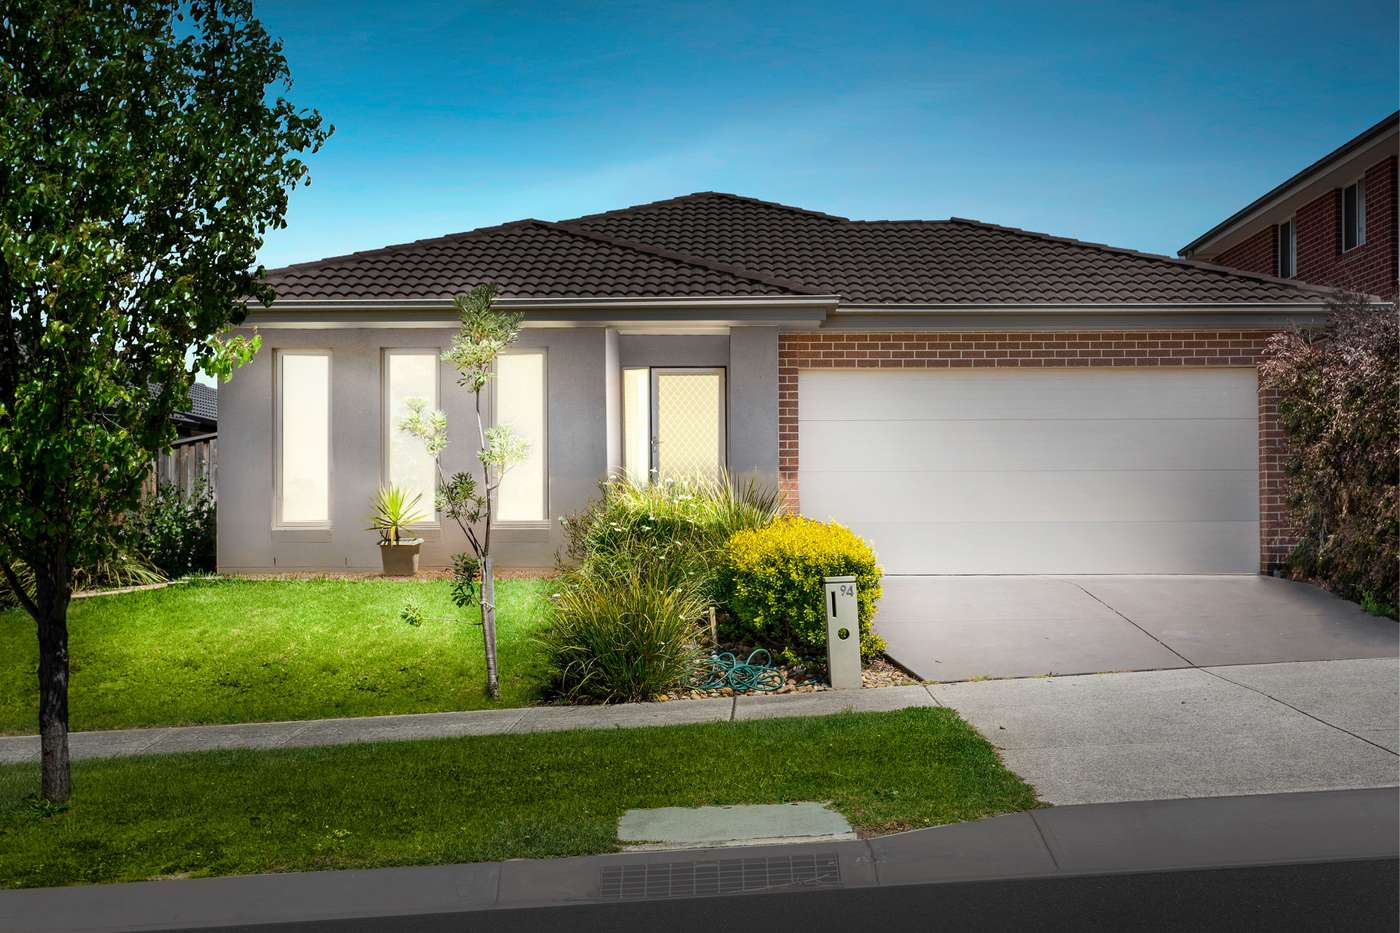 Main view of Homely house listing, 94 Majestic Drive, Officer, VIC 3809